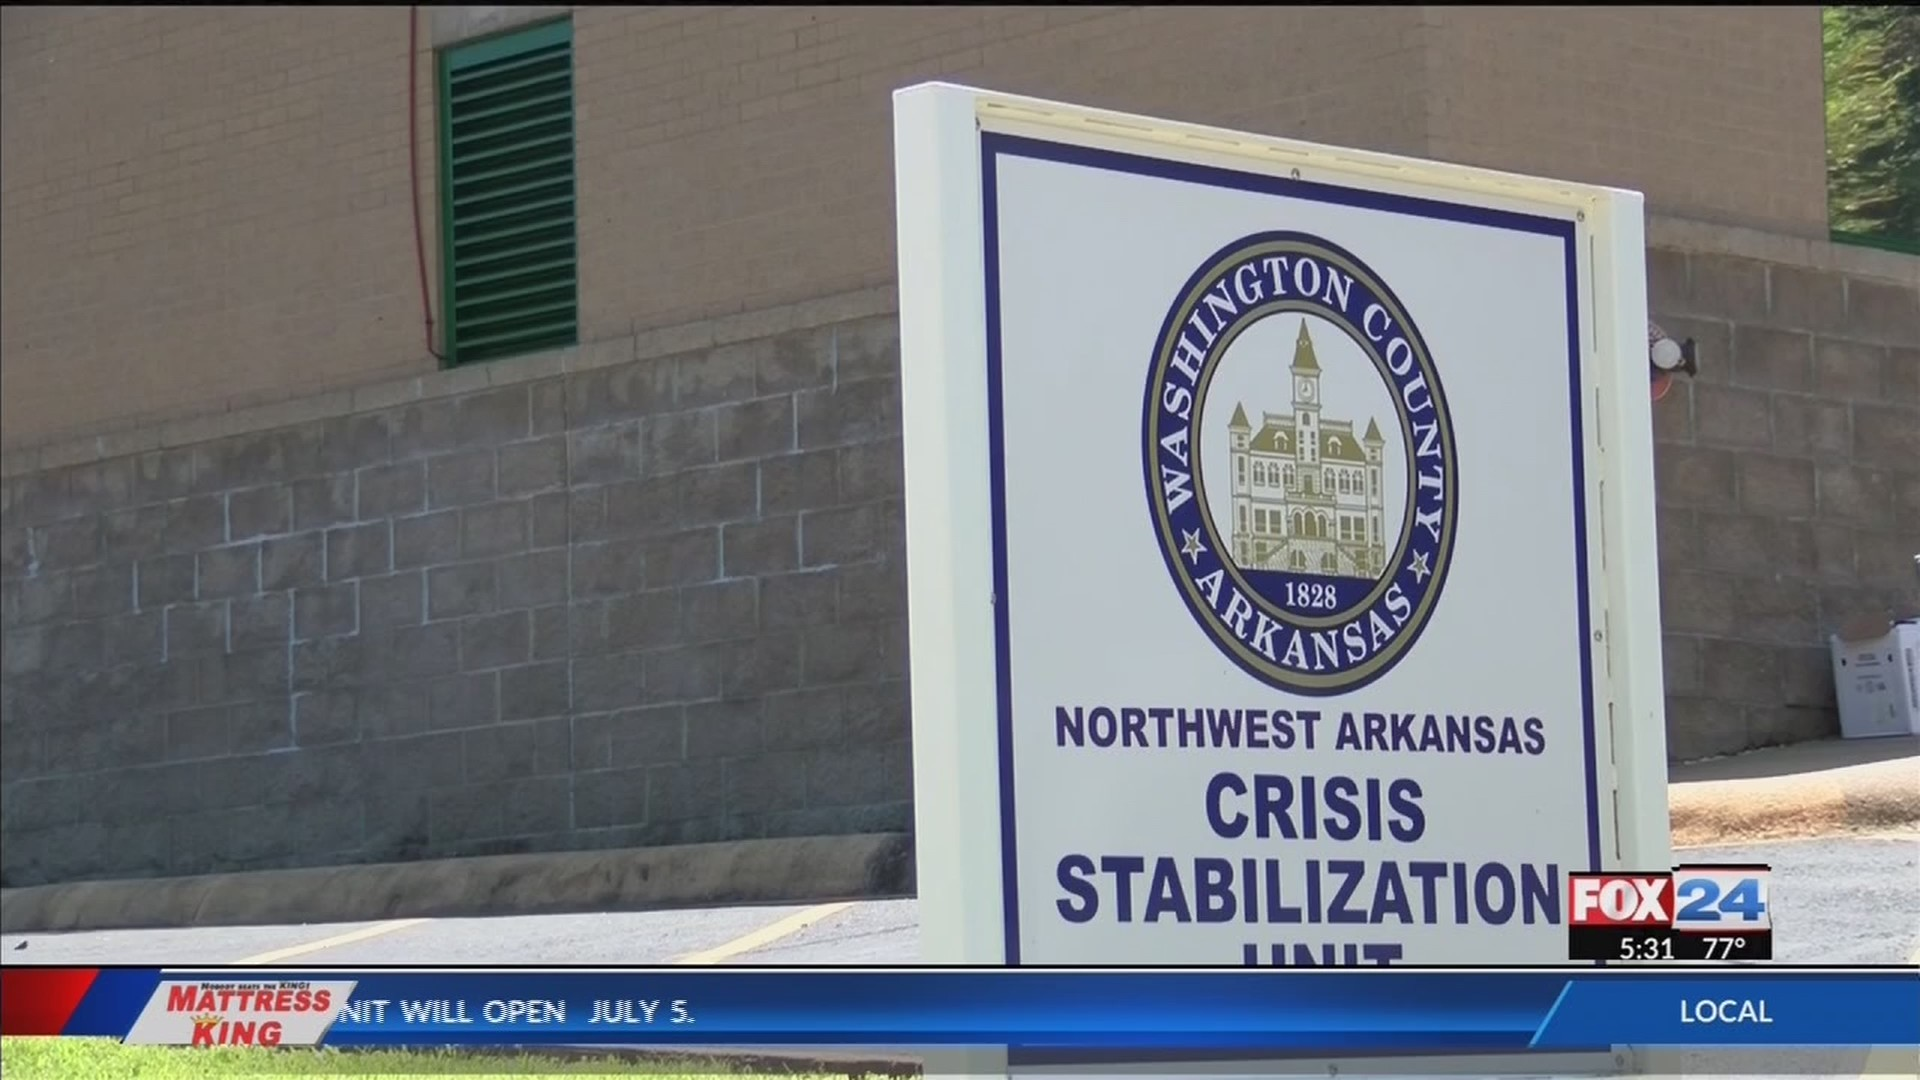 Crisis stabilization unit opens in Fayetteville